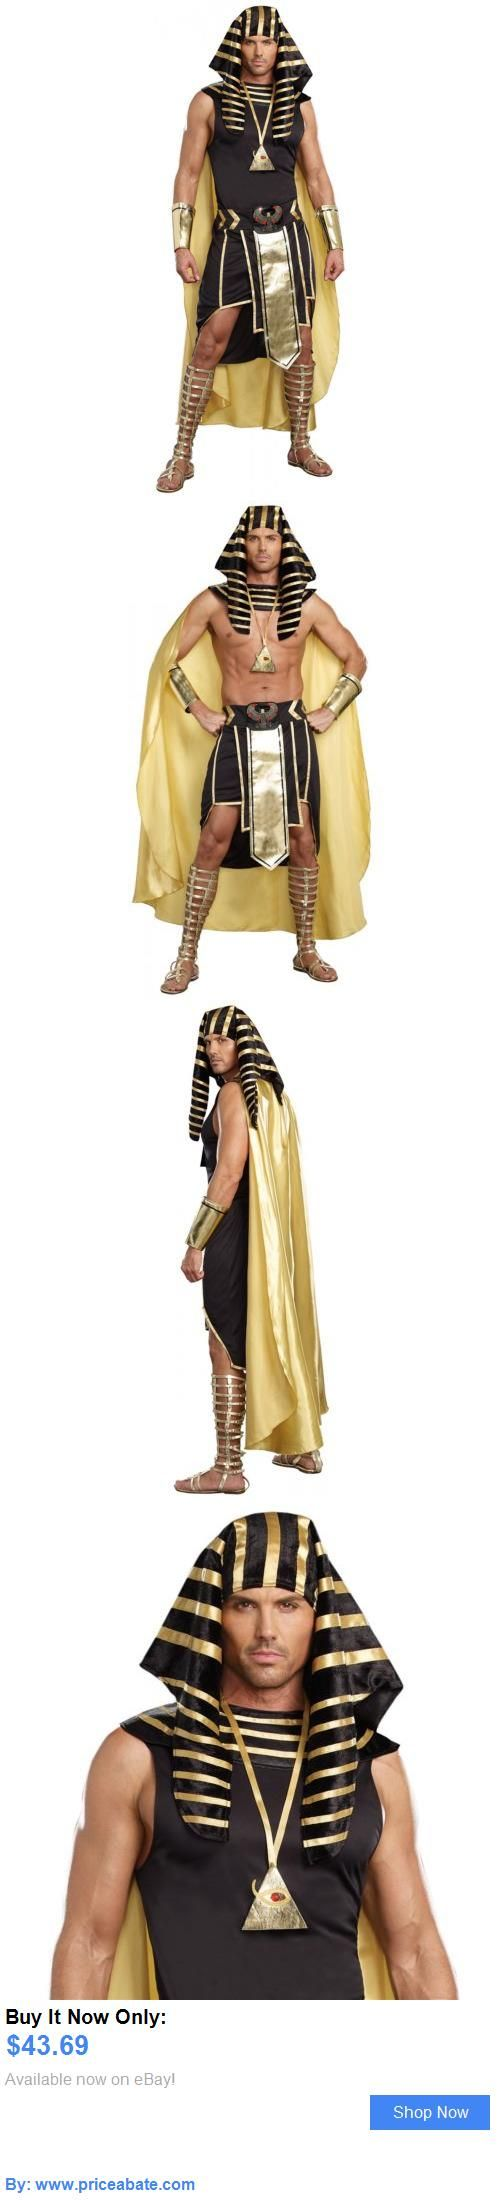 Men Costumes: Egyptian Costume Adult Pharaoh King Tut Halloween Fancy Dress BUY IT NOW ONLY: $43.69 #priceabateMenCostumes OR #priceabate